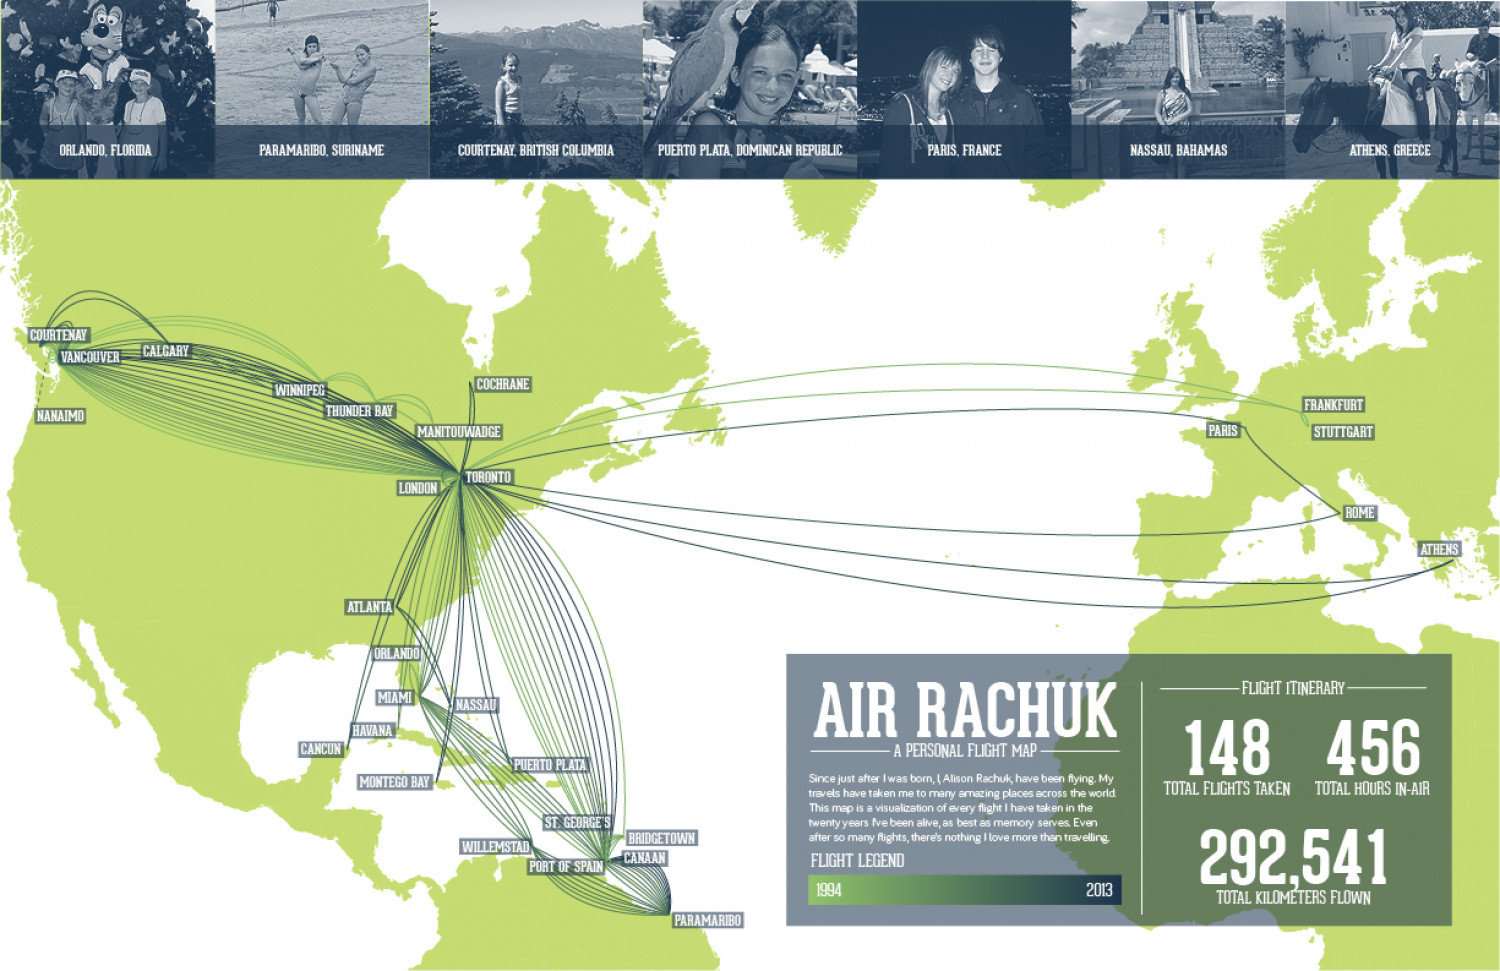 Personal Flight Map Infographic